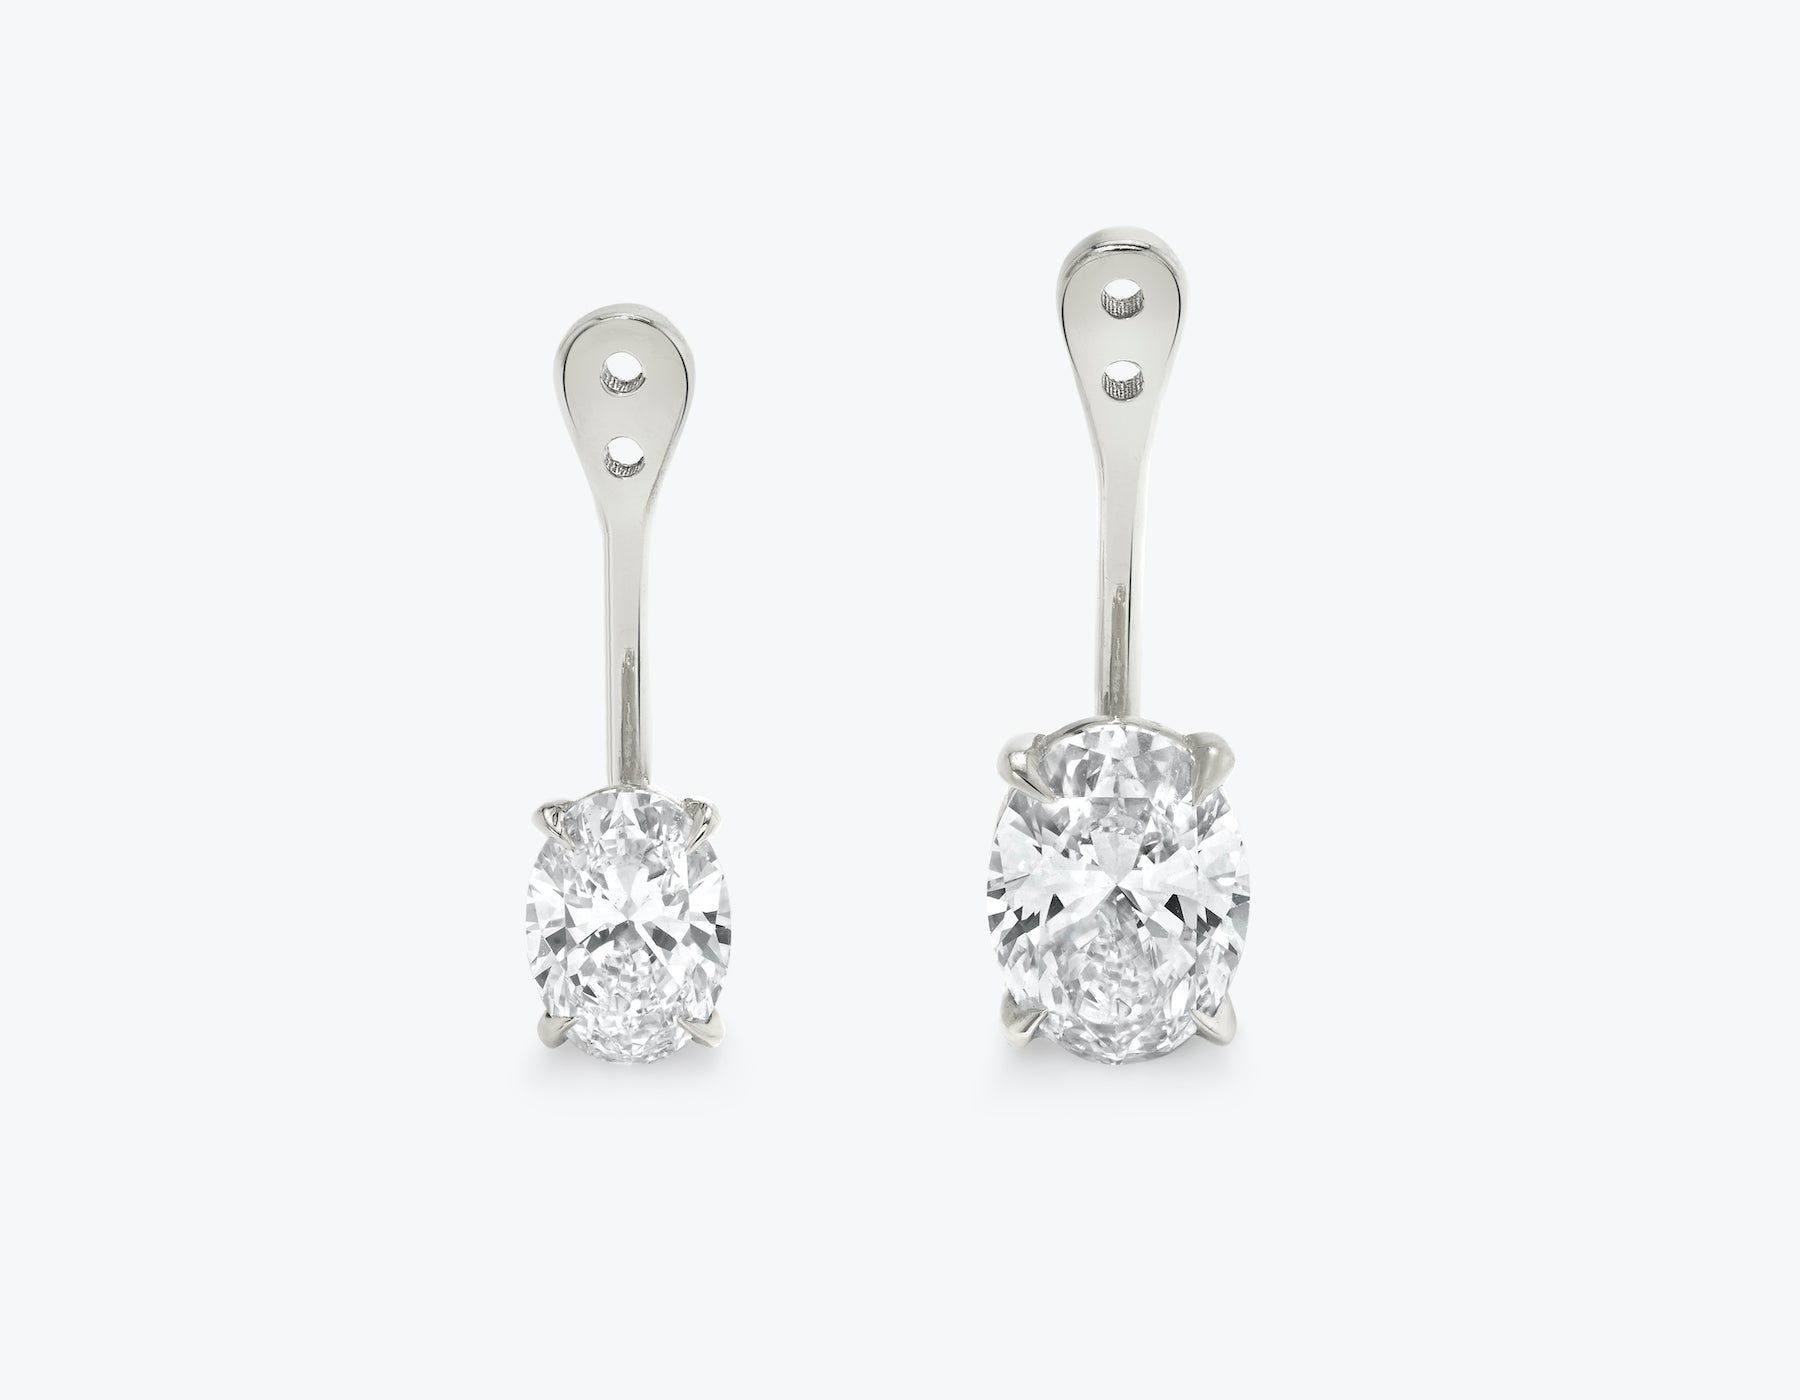 Vrai solitaire oval diamond drop ear jackets made in 14k solid gold with sustainably created diamonds, 14K White Gold